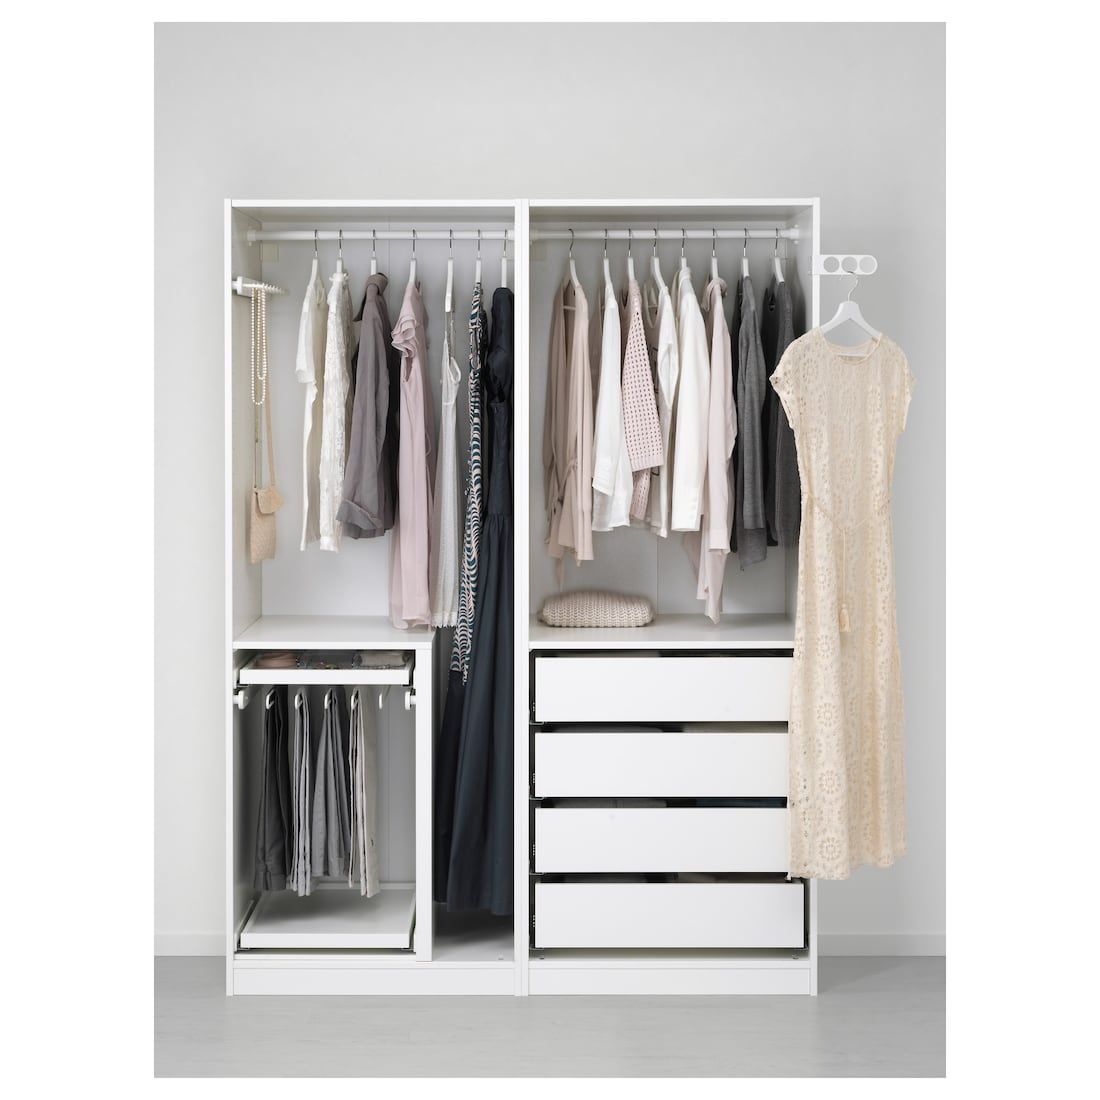 Ikea Us Furniture And Home Furnishings Pax Wardrobe Ikea Pax Wardrobe Ikea Pax